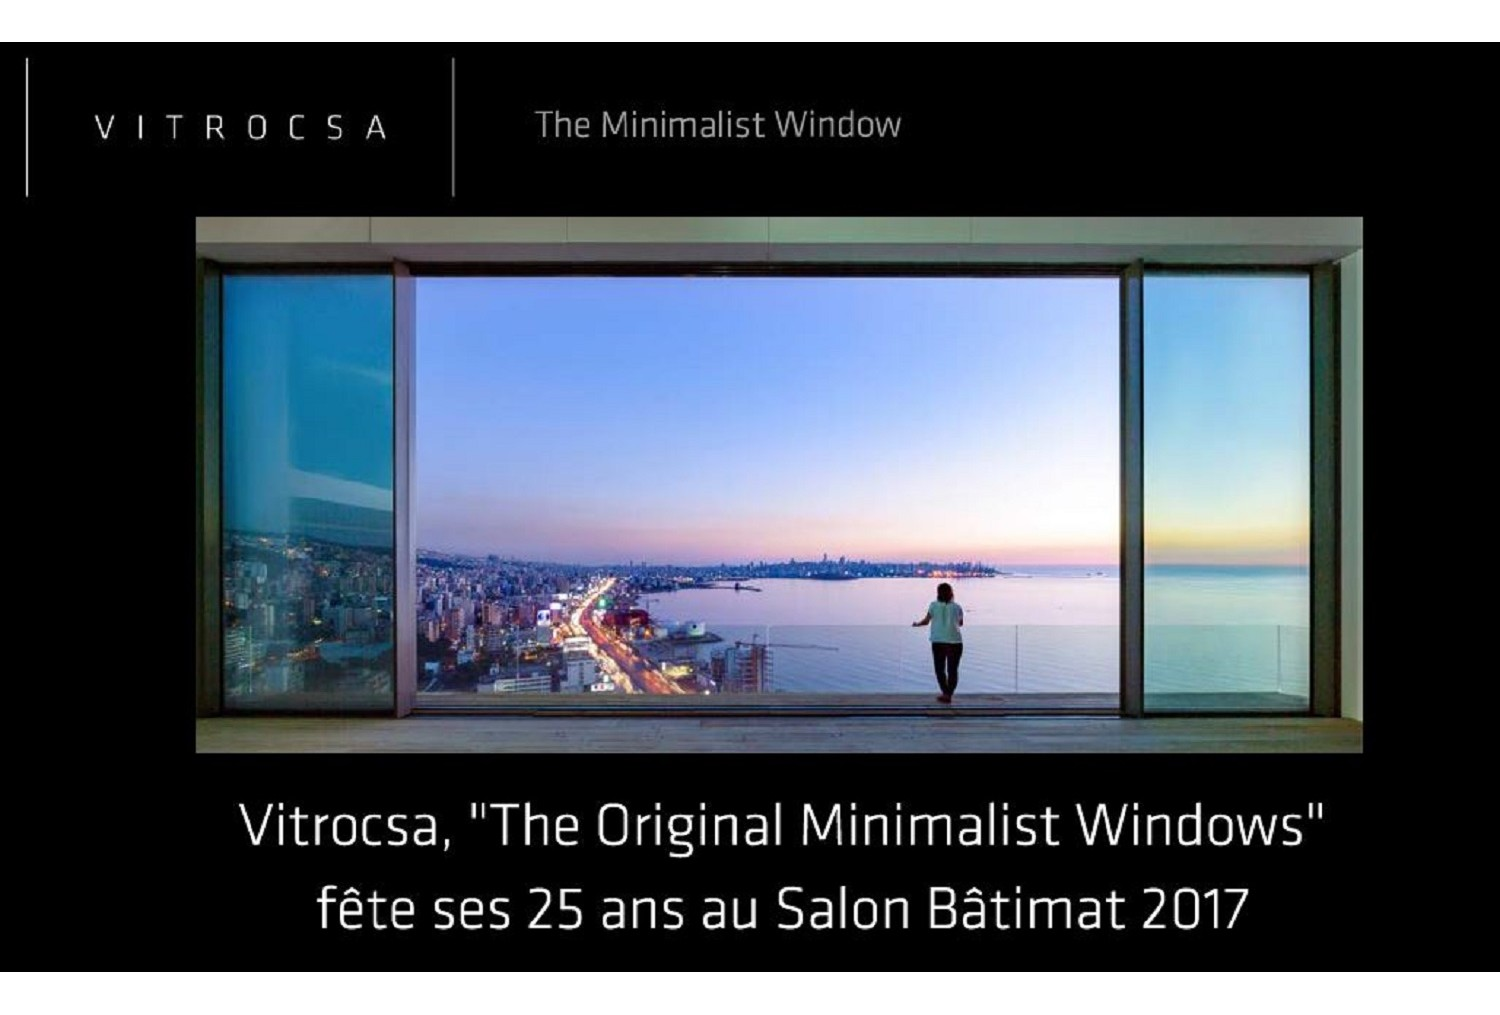 Vitrocsa, The Original Minimalist Windows fête ses 25 ans au Salon Bâtimat 2017